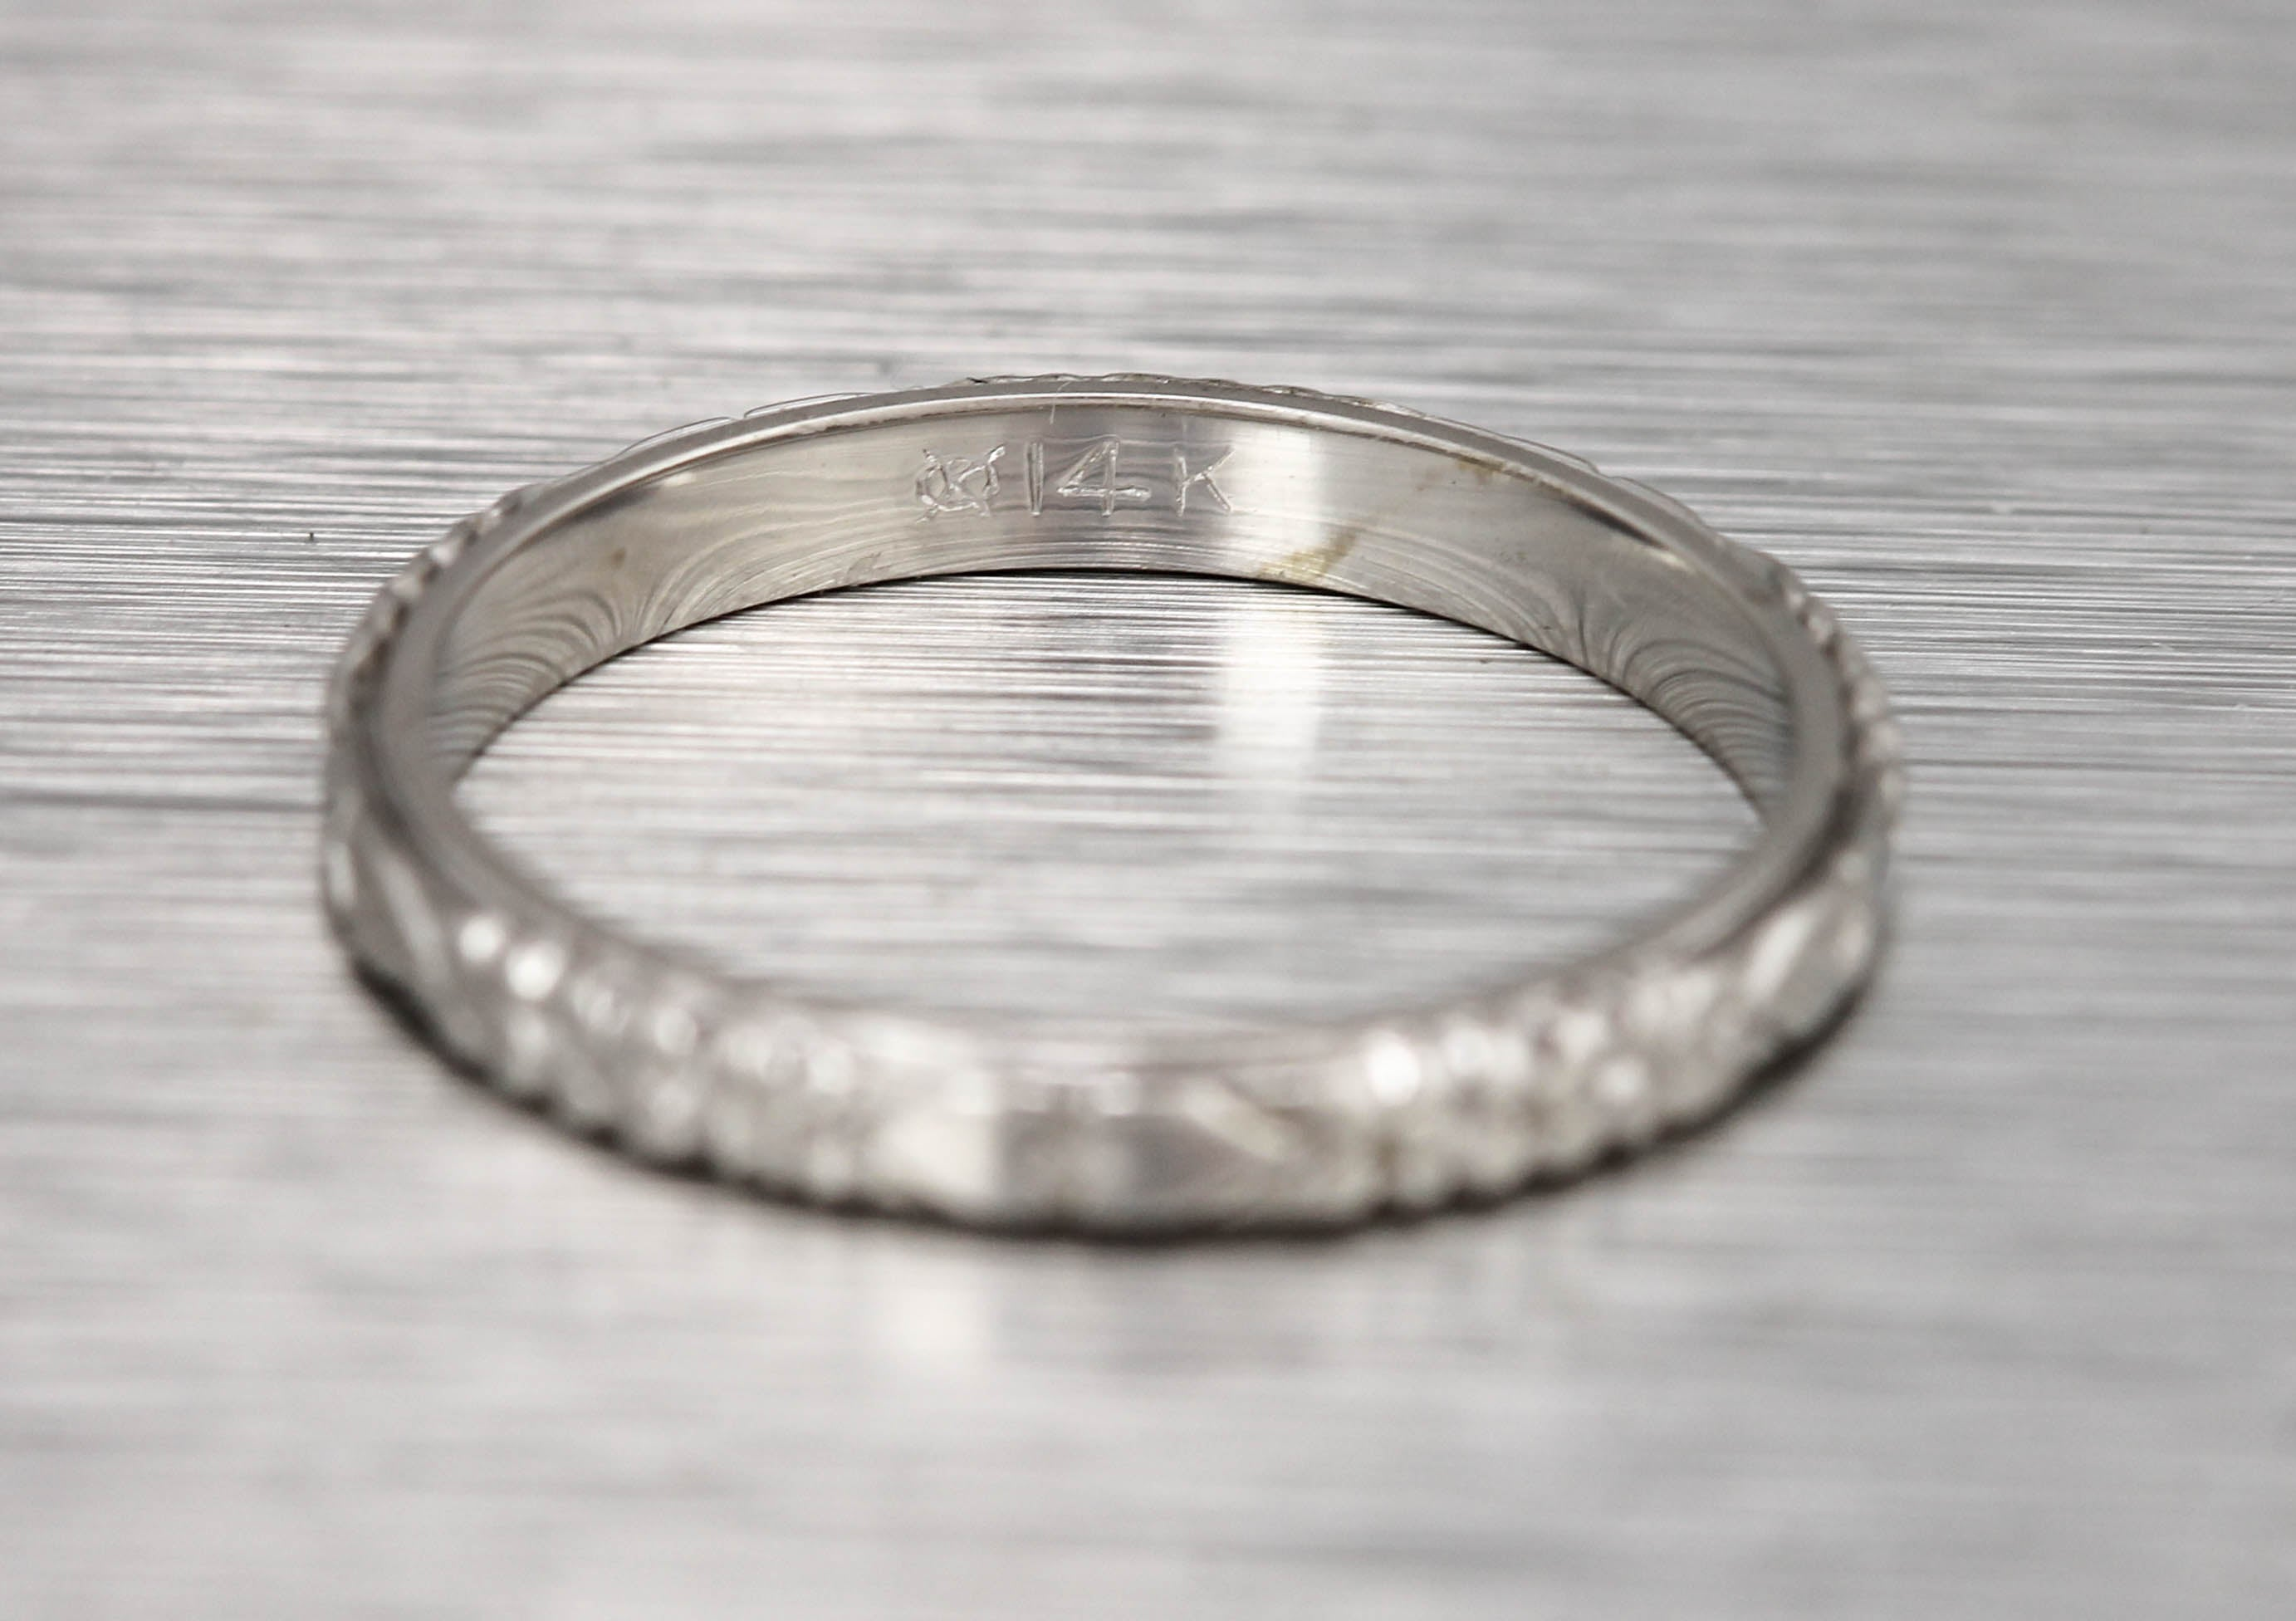 Ladies Vintage Estate 14K White Gold Heart Etched Eternity Band Ring